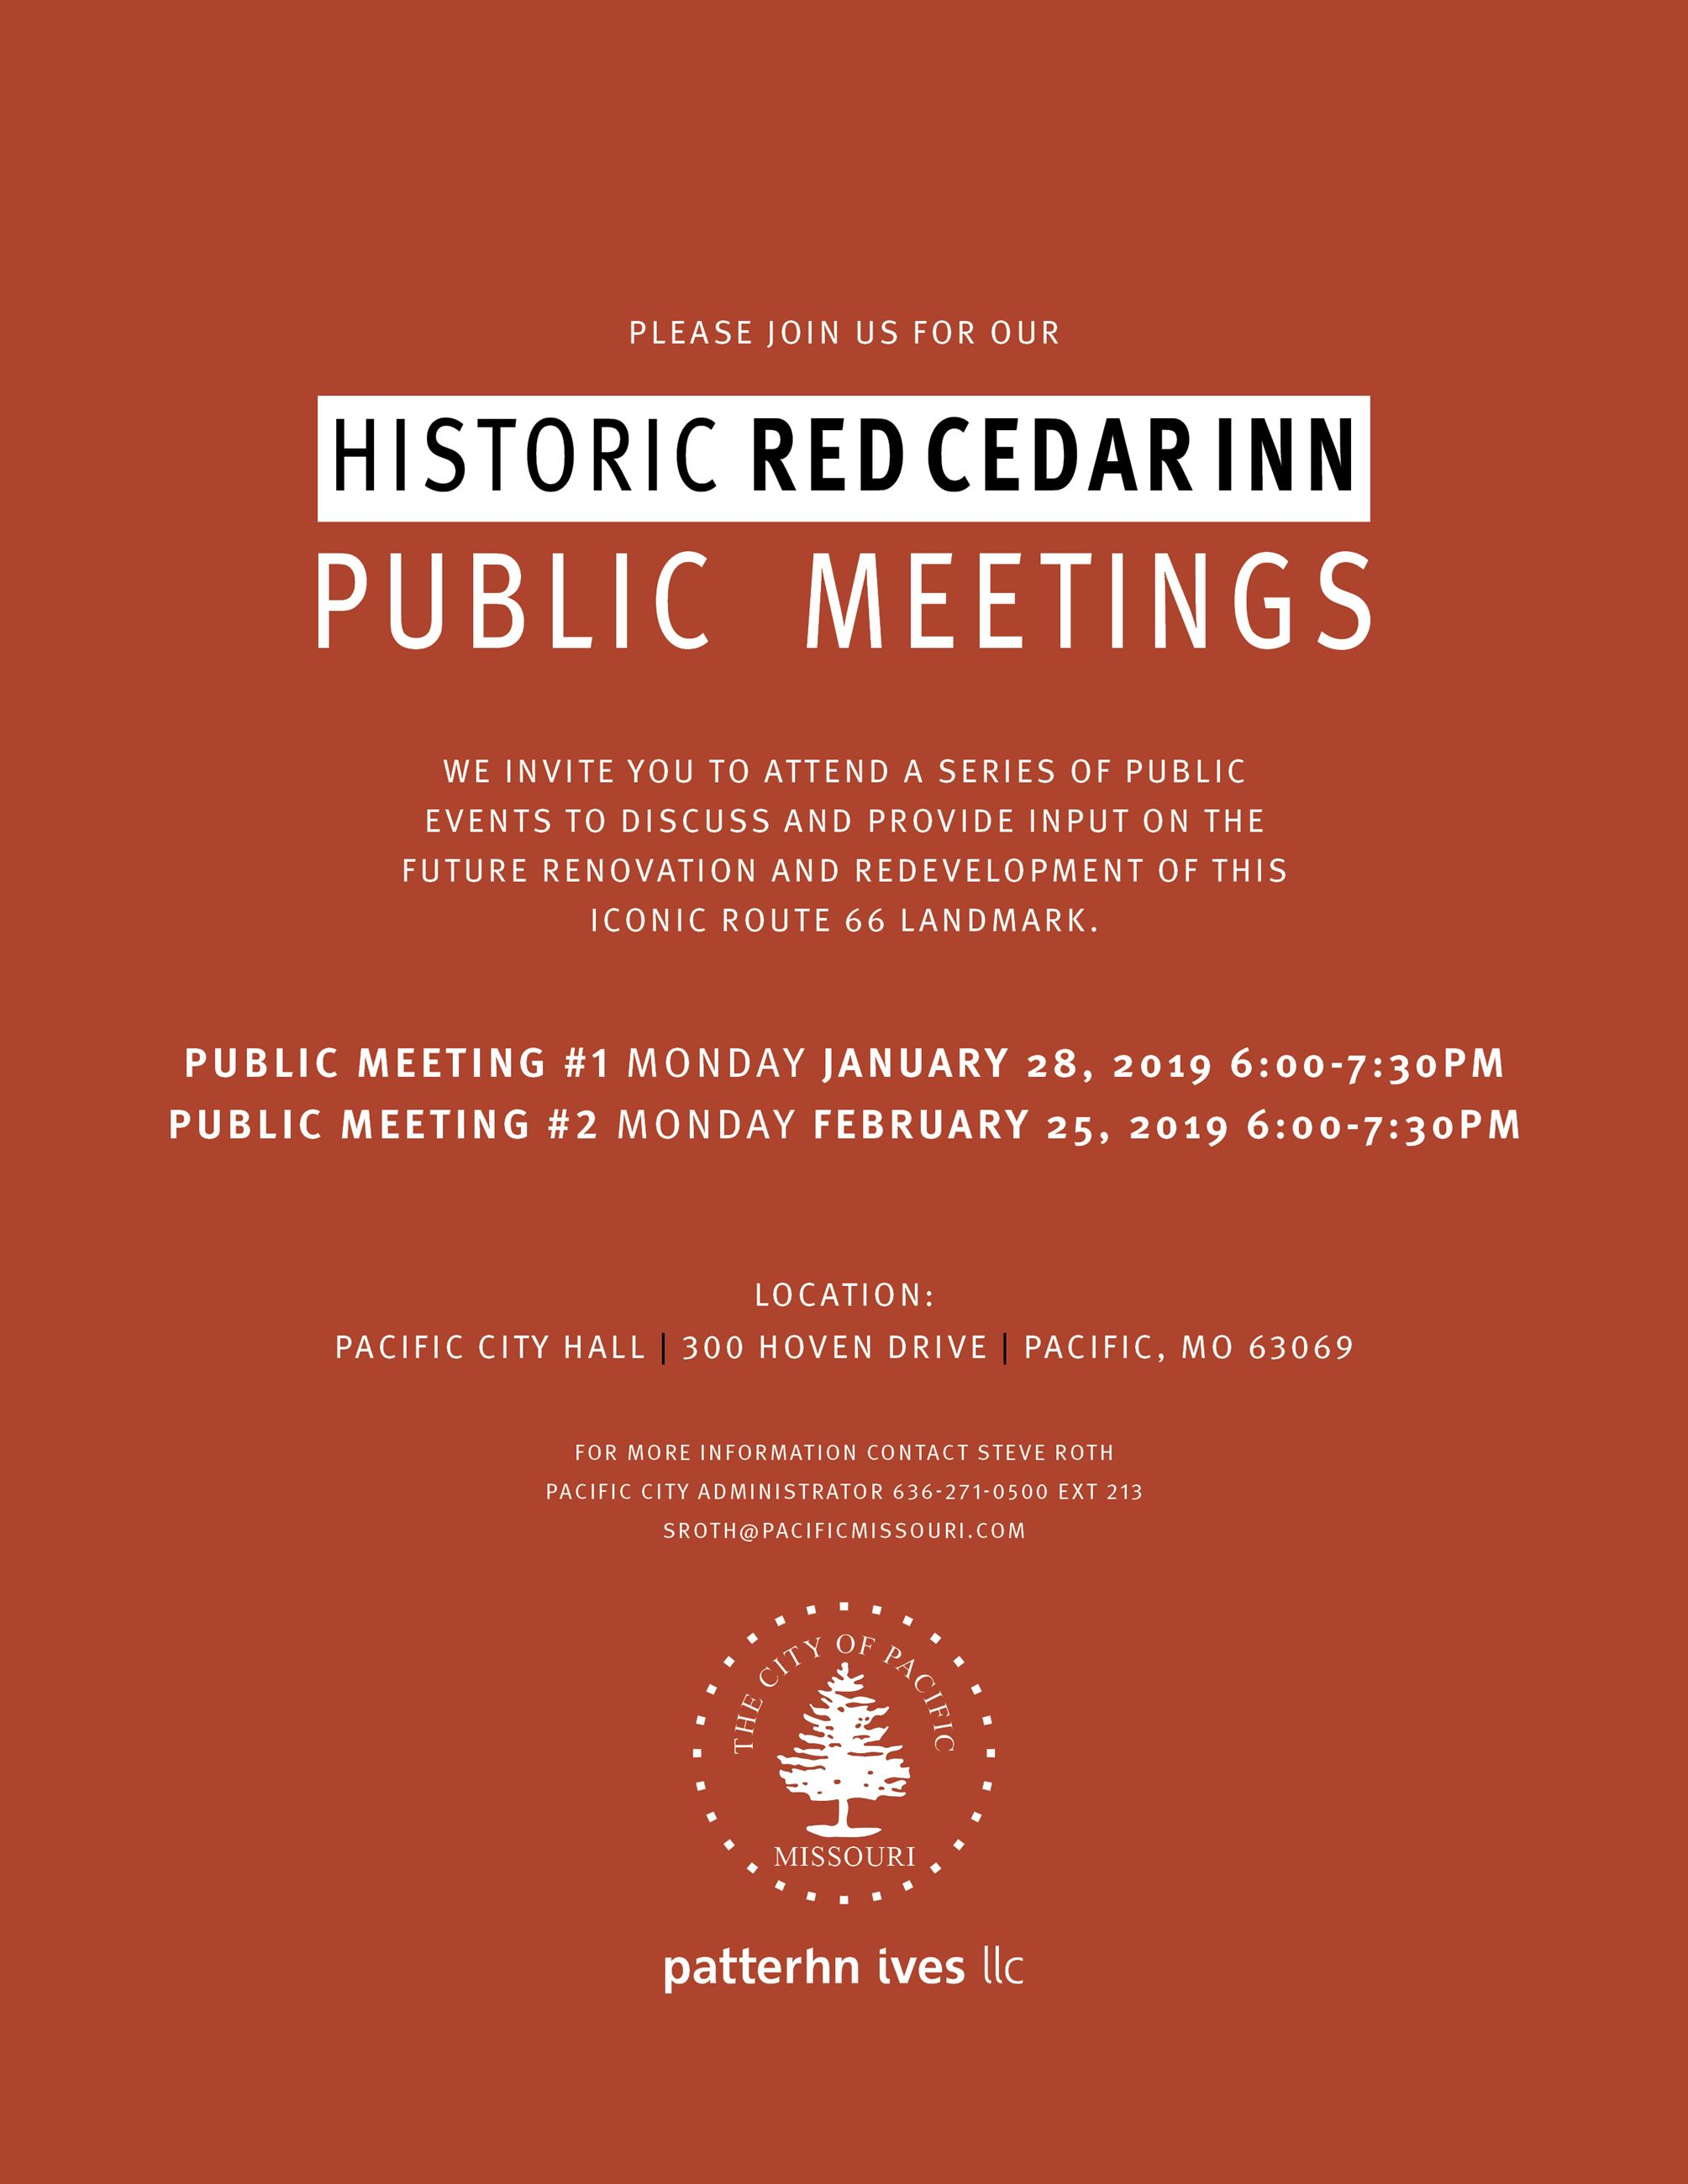 Red Cedar Inn PUBLIC MEETINGS INVITE 8-5x11 r1